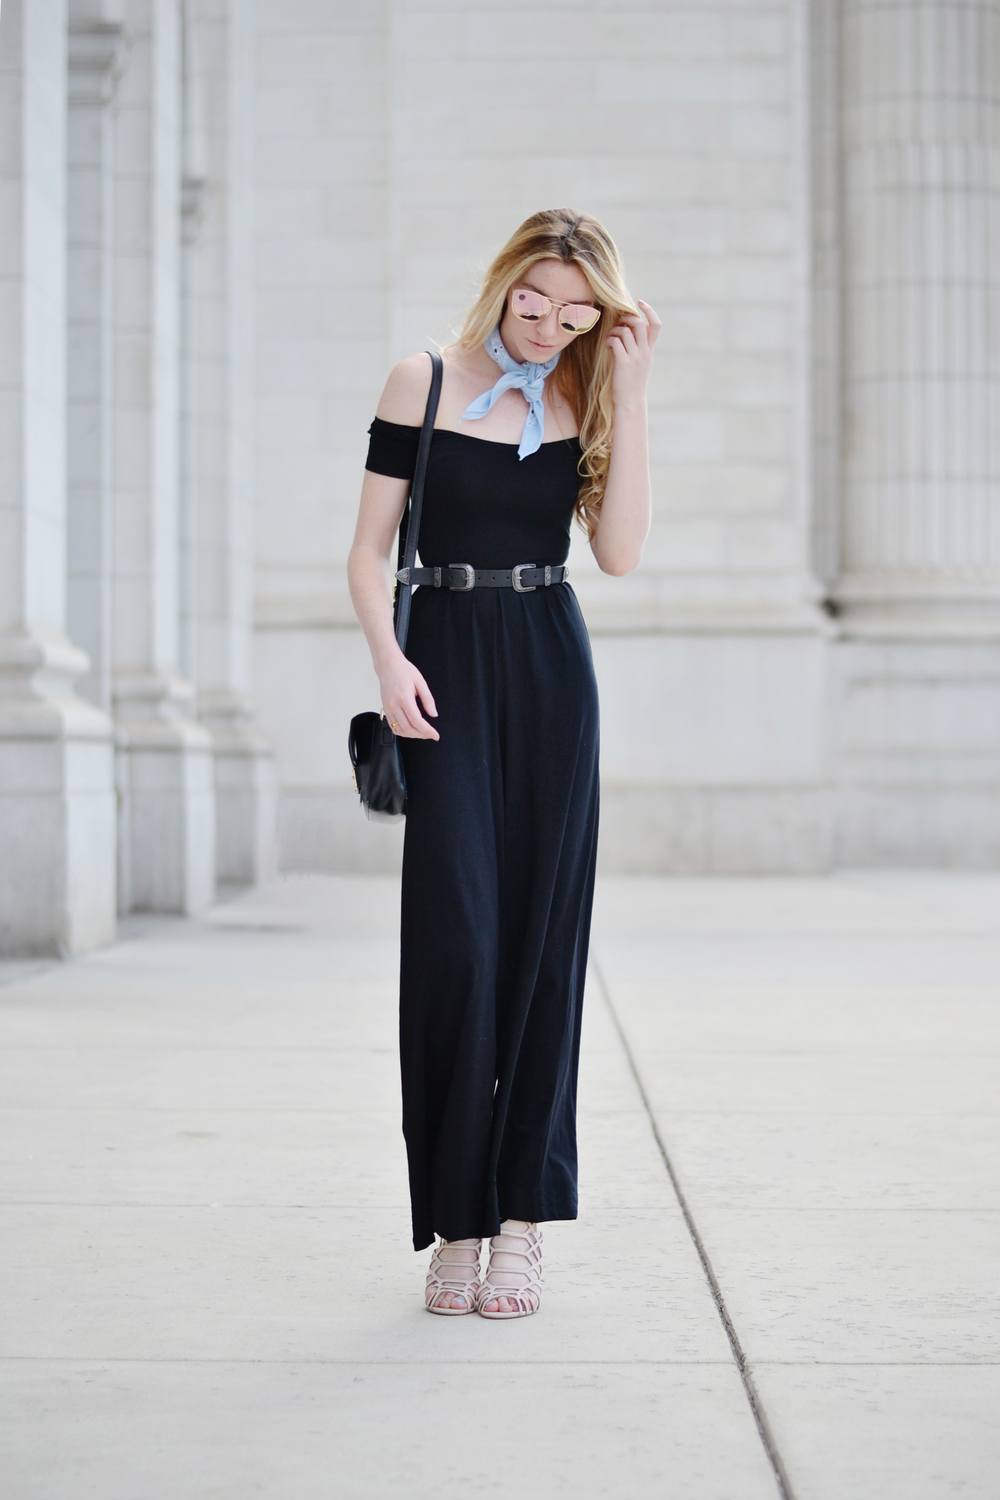 Off-The-Shoulder Jumpsuit & Blogger Double Buckle Belt (via Chic Now)